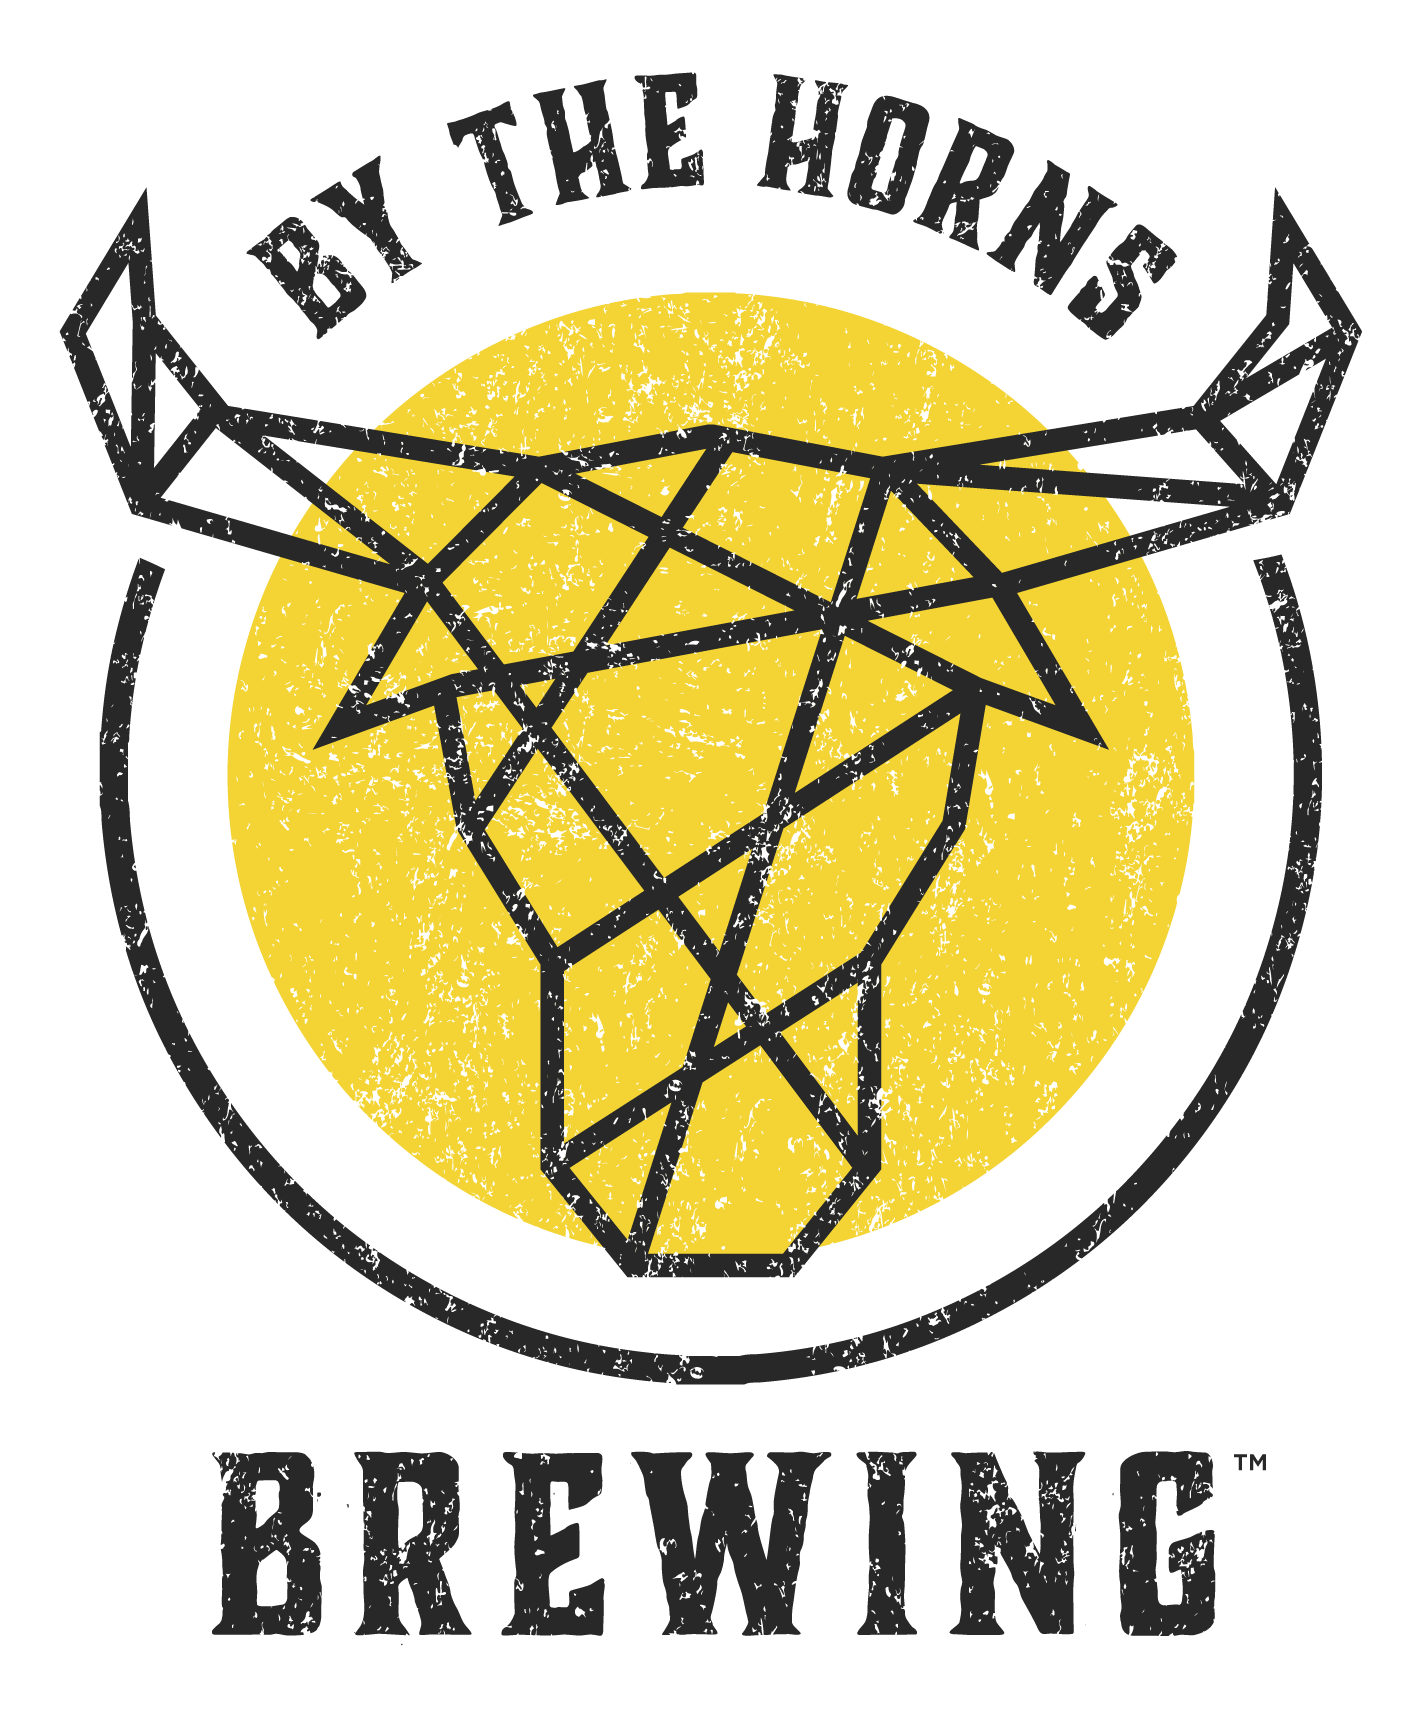 By The Horns Brewing